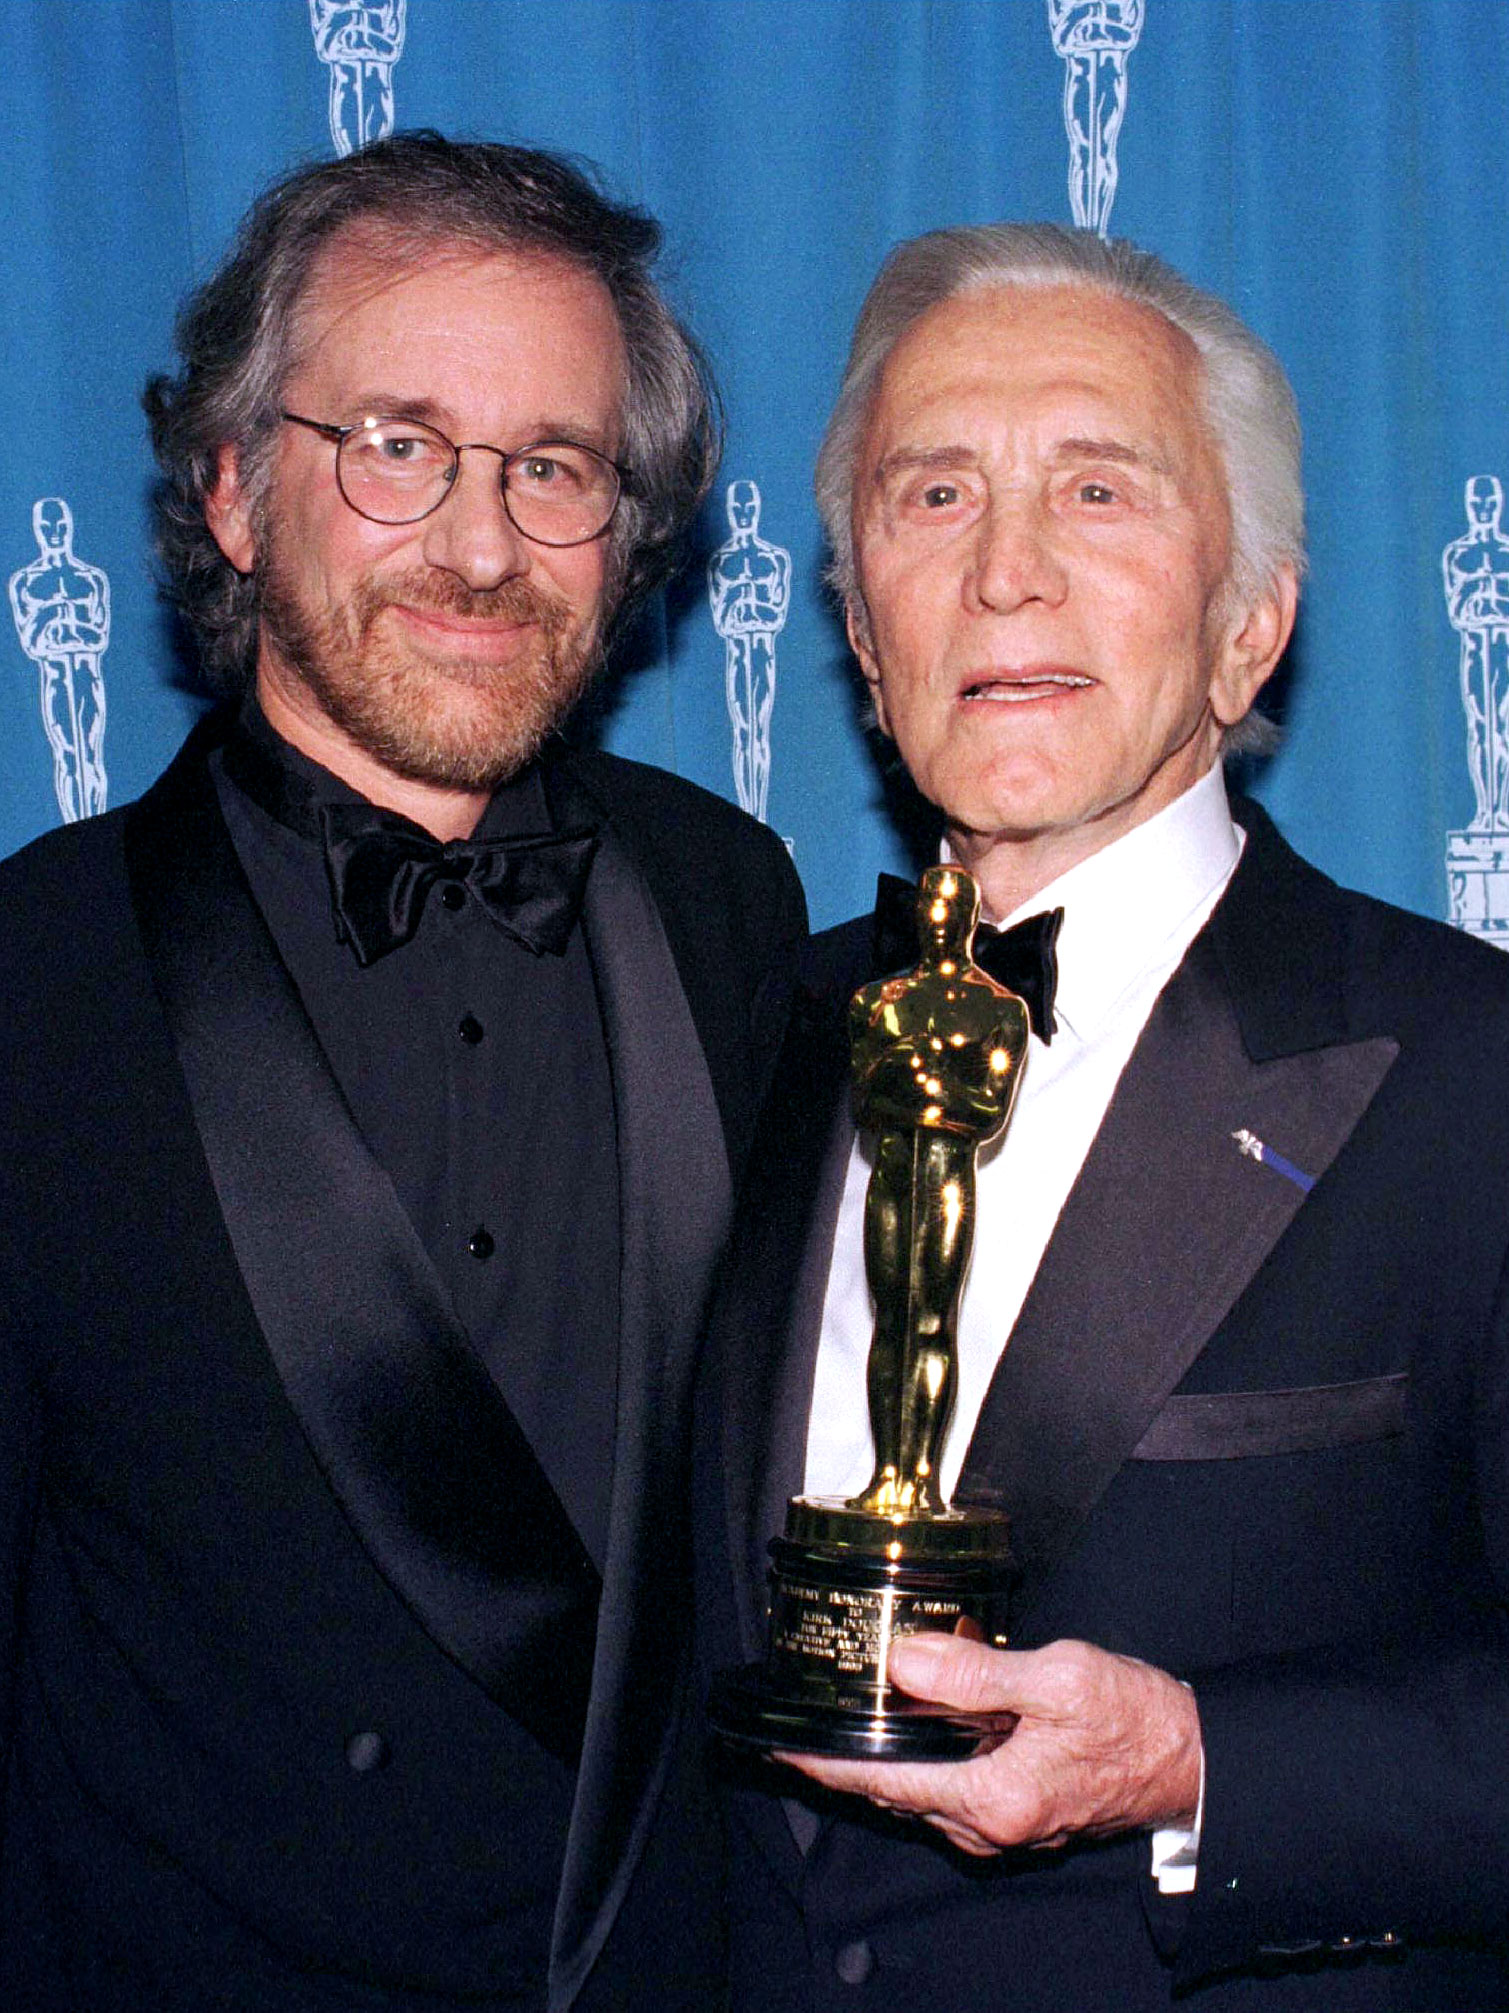 Actor Kirk Douglas holds his honorary Oscar for Lifetime Achievement Award he received from director Steven Spielberg (L) at the 68th Academy Awards in Los Angeles, March 25 - RTXGW0W